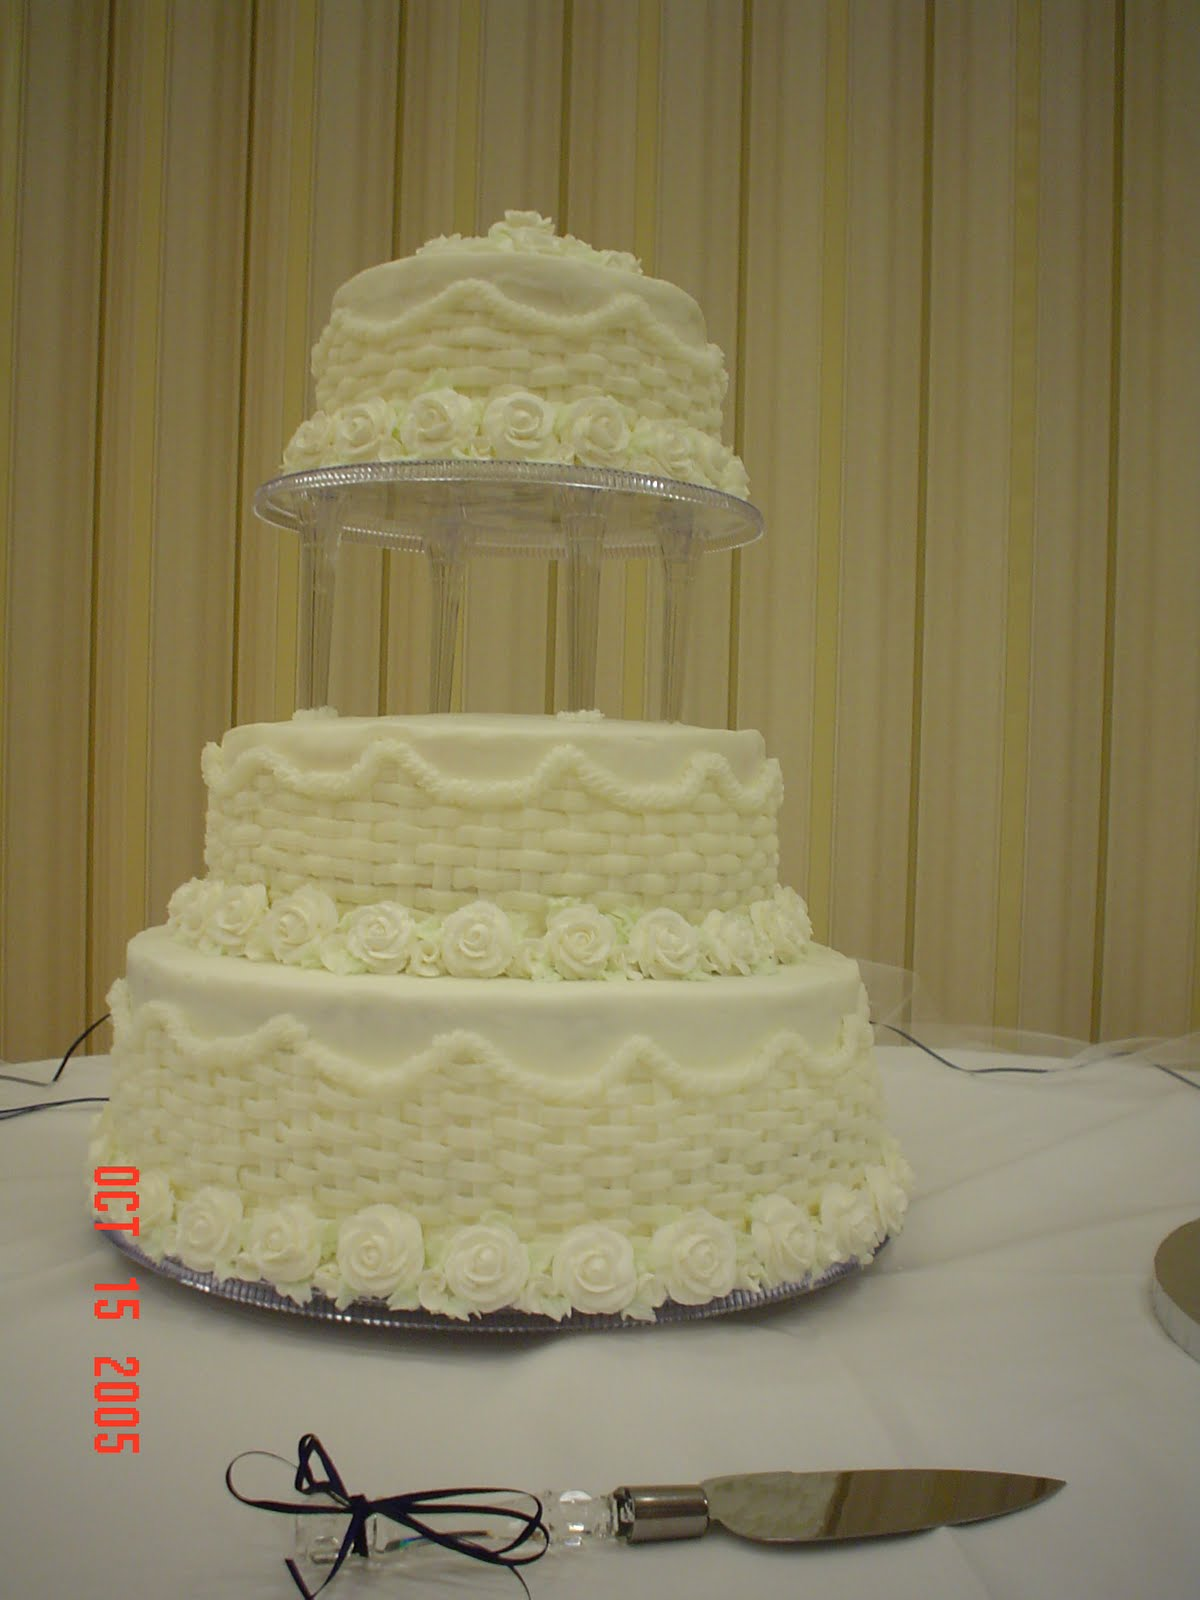 Amee s Creations White Wedding Cake with Pillars